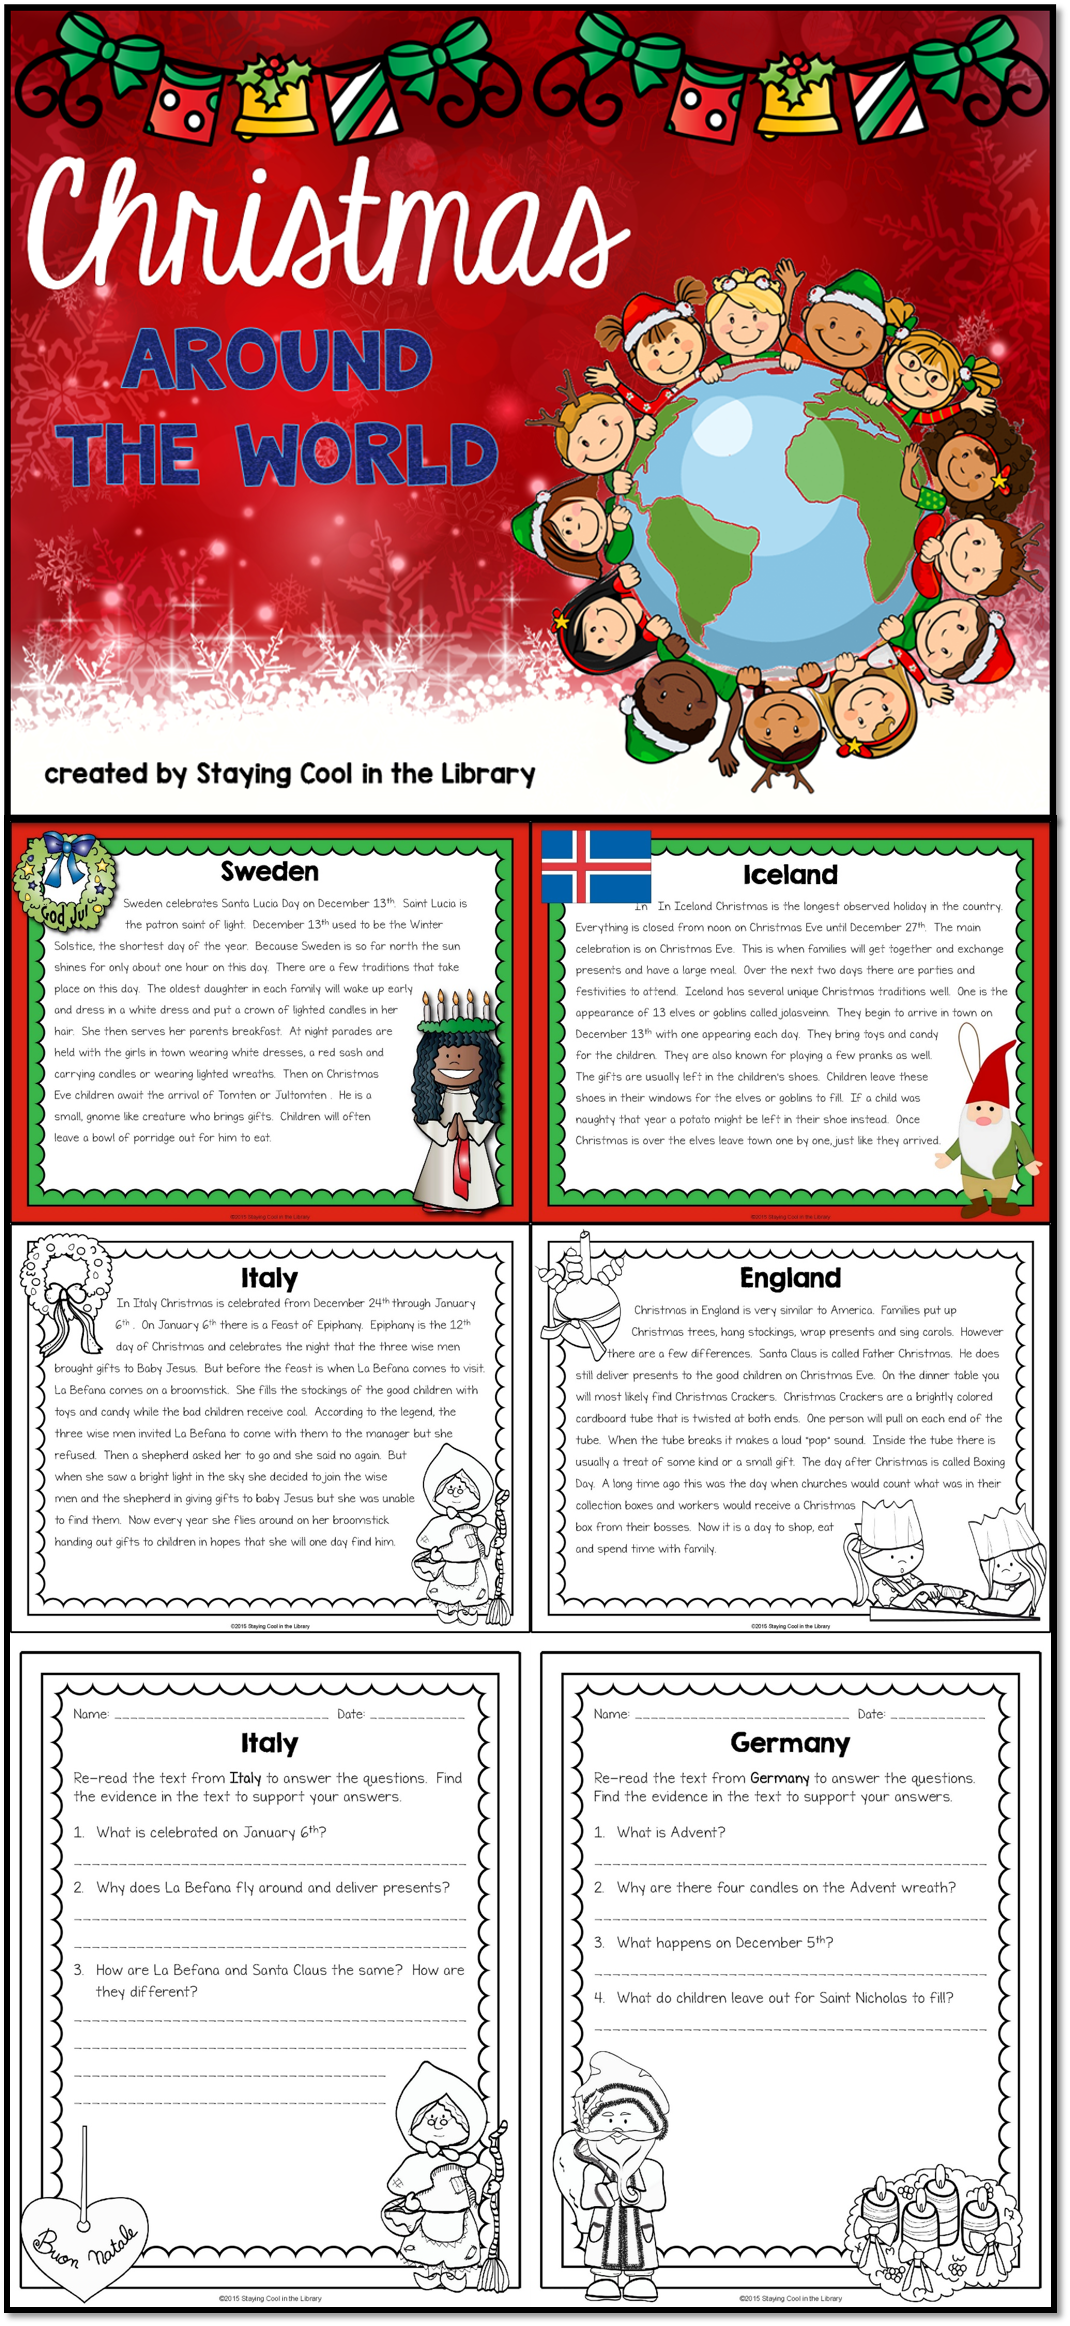 Students will review Christmas traditions around the world